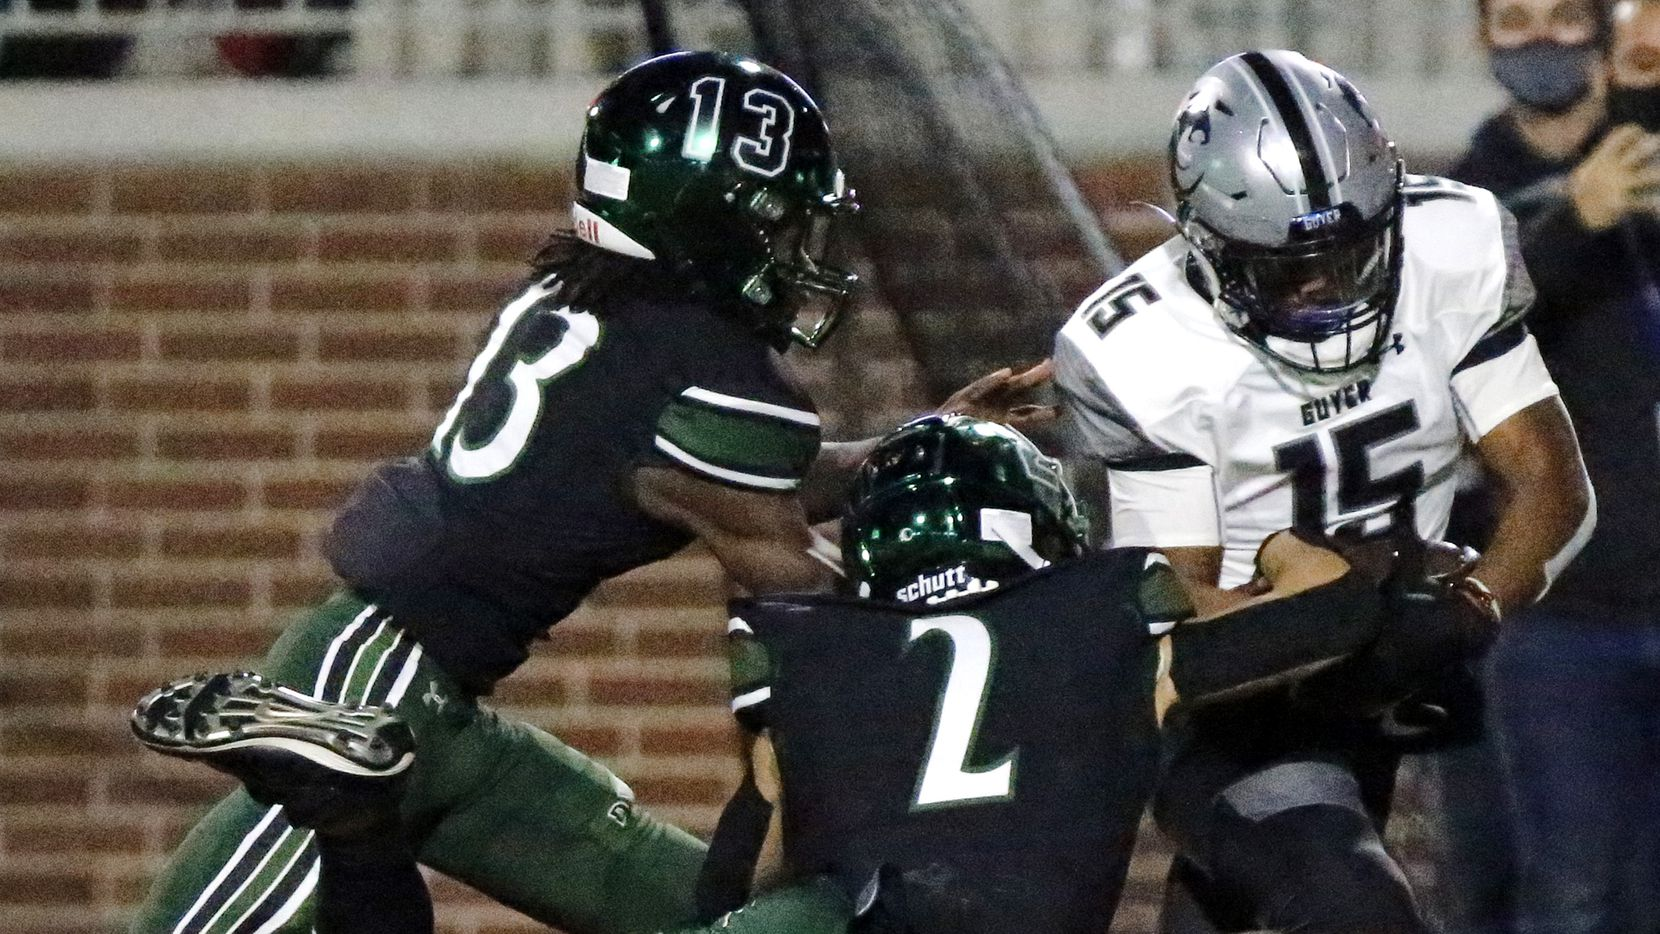 Denton Guyer High School wide receiver D'marcus Howard (15) is brought down by Prosper High School defensive back Ryan Medeiros (2) and Prosper High School defensive back Darrnell Bradshaw (13) after making the catch to set up the winning score during the second half as Prosper High School hosted Denton Guyer High School in a District 5-6A football game at Children's Health Stadium in Prosper on Friday night, October 30, 2020.